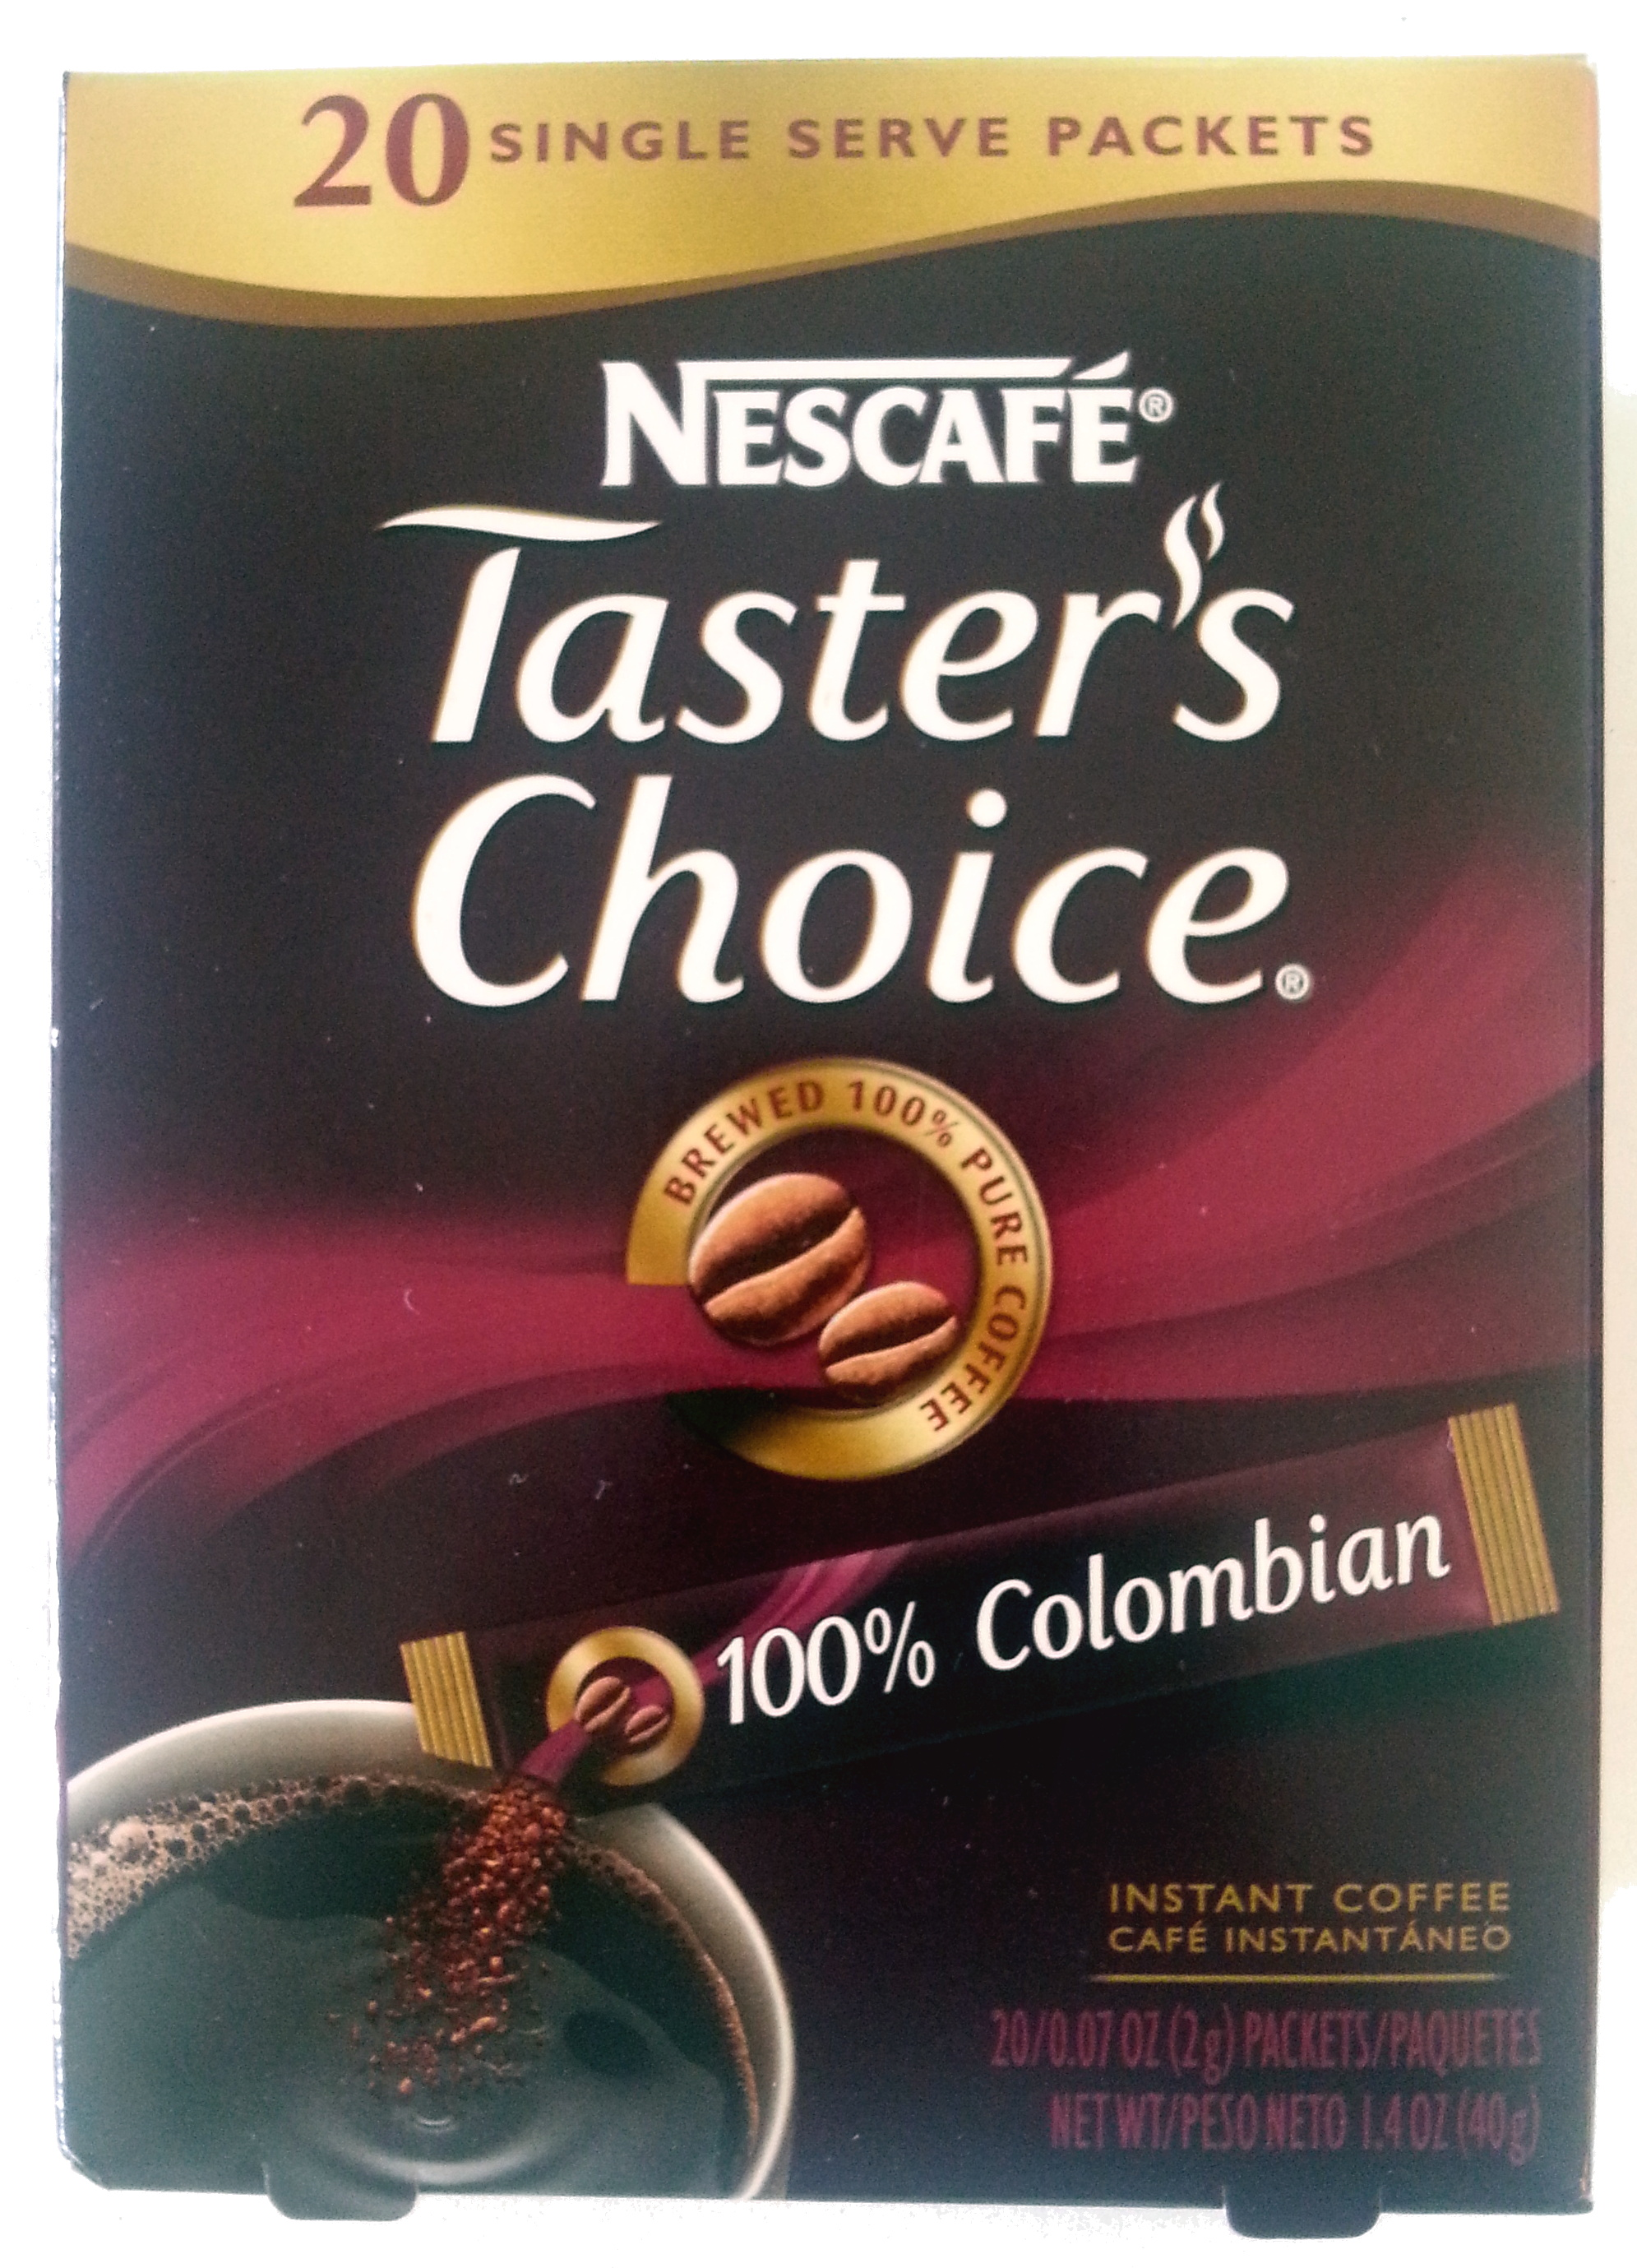 Taster's Choice 100% Colombian - Product